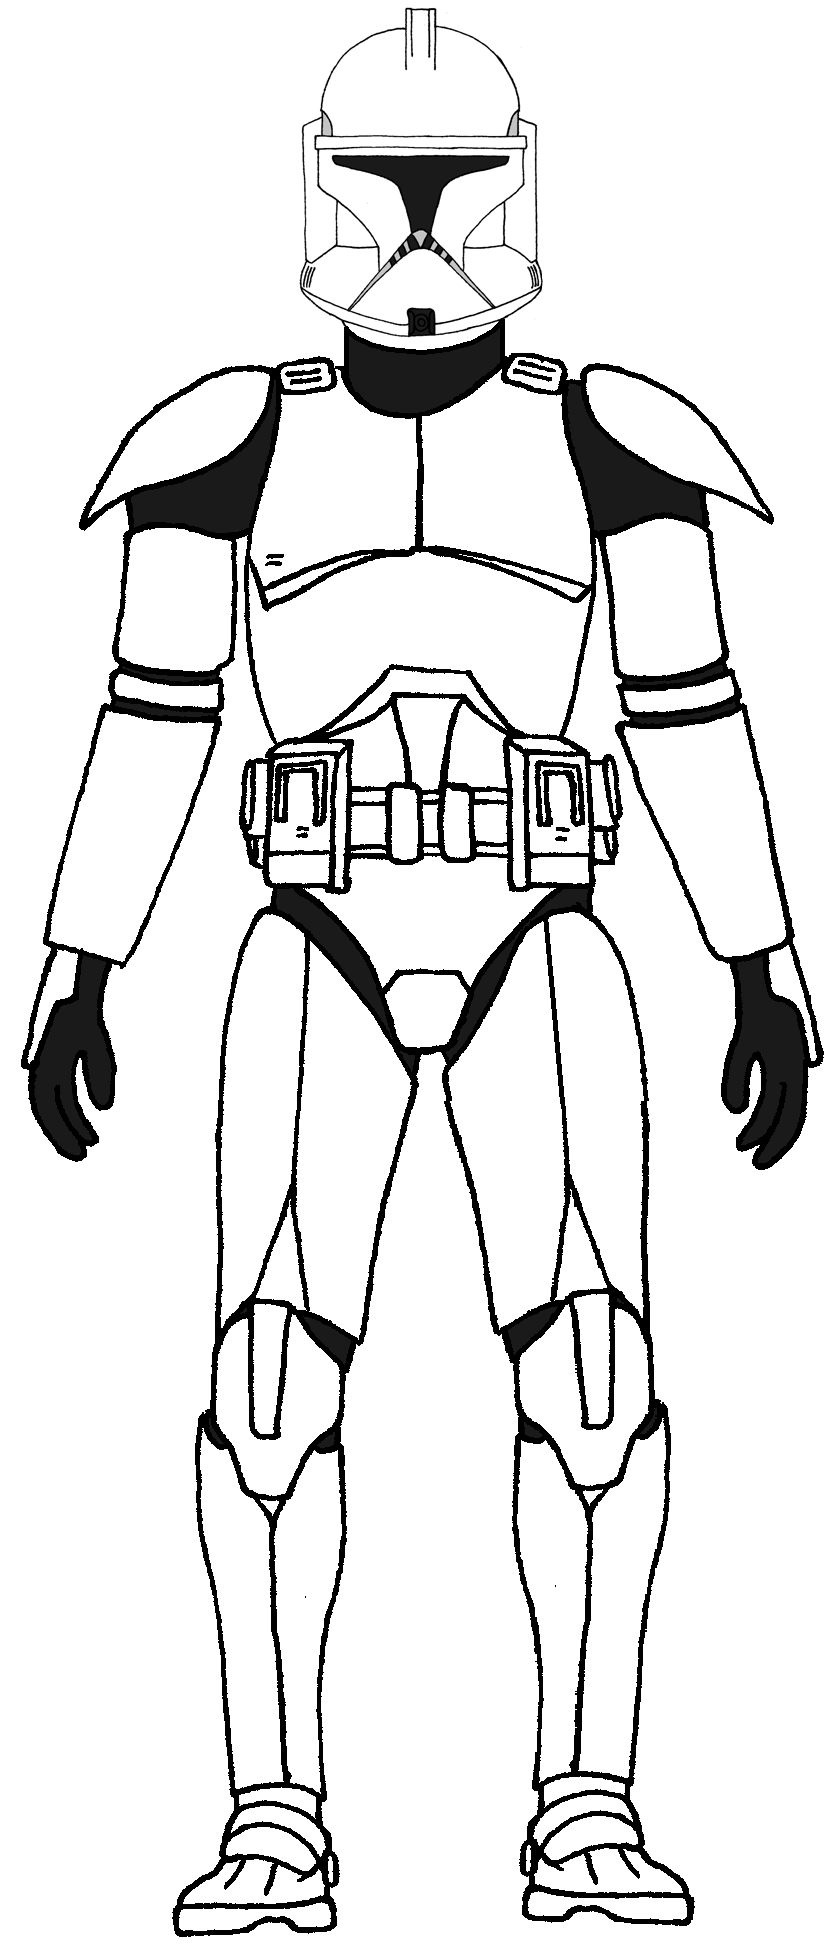 Clone trooper colouring pages